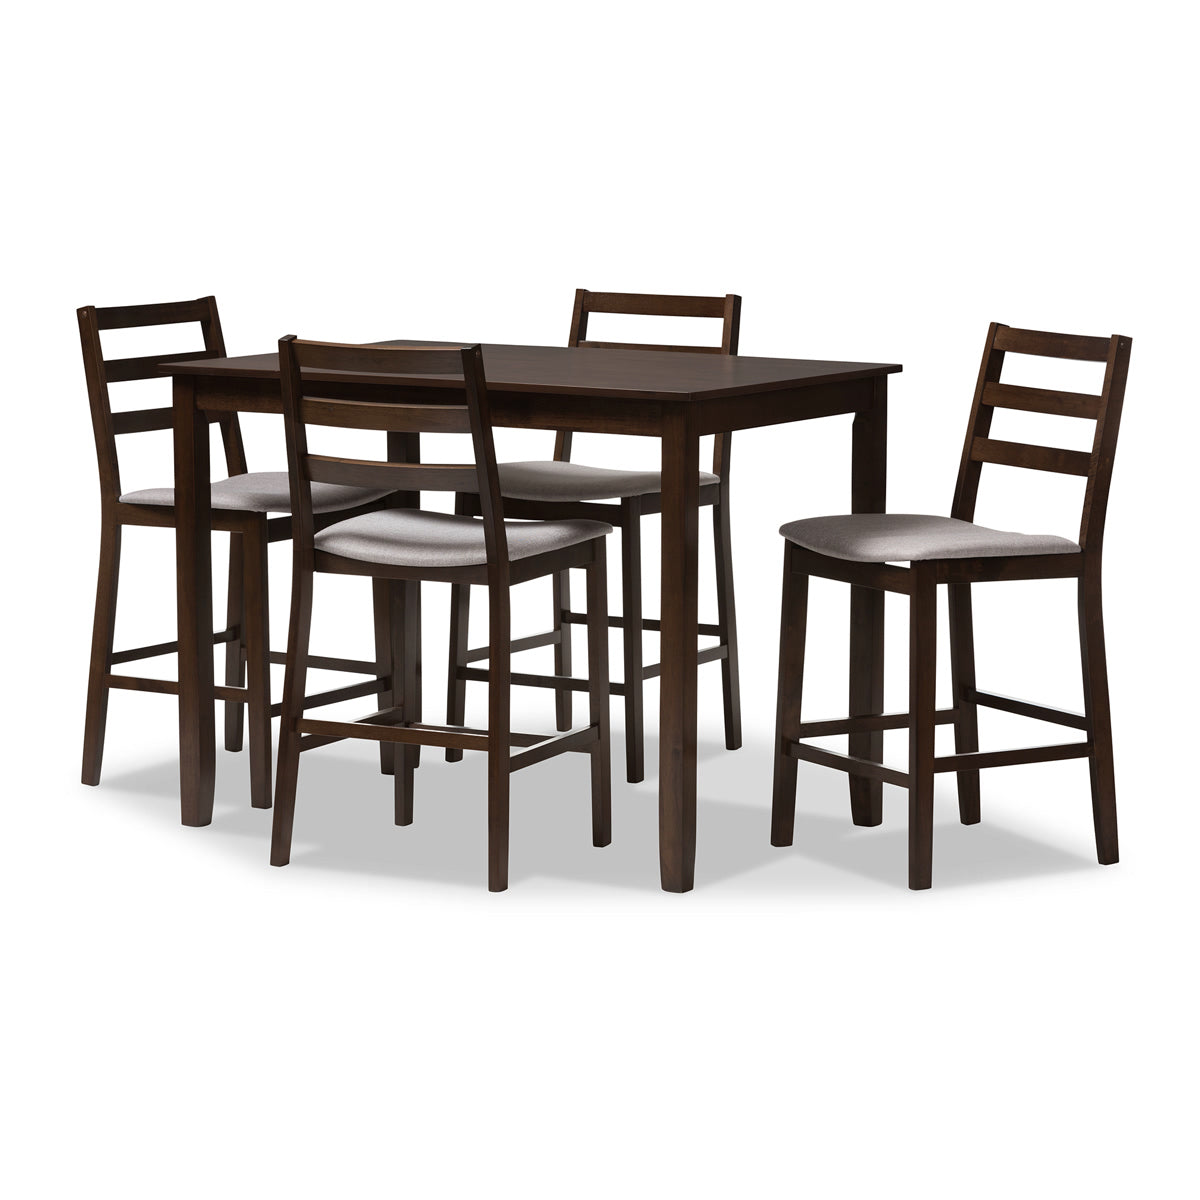 Baxton Studio Nadine Modern and Contemporary Walnut-Finished Light Grey Fabric Upholstered 5-Piece Pub Set Baxton Studio-0-Minimal And Modern - 1